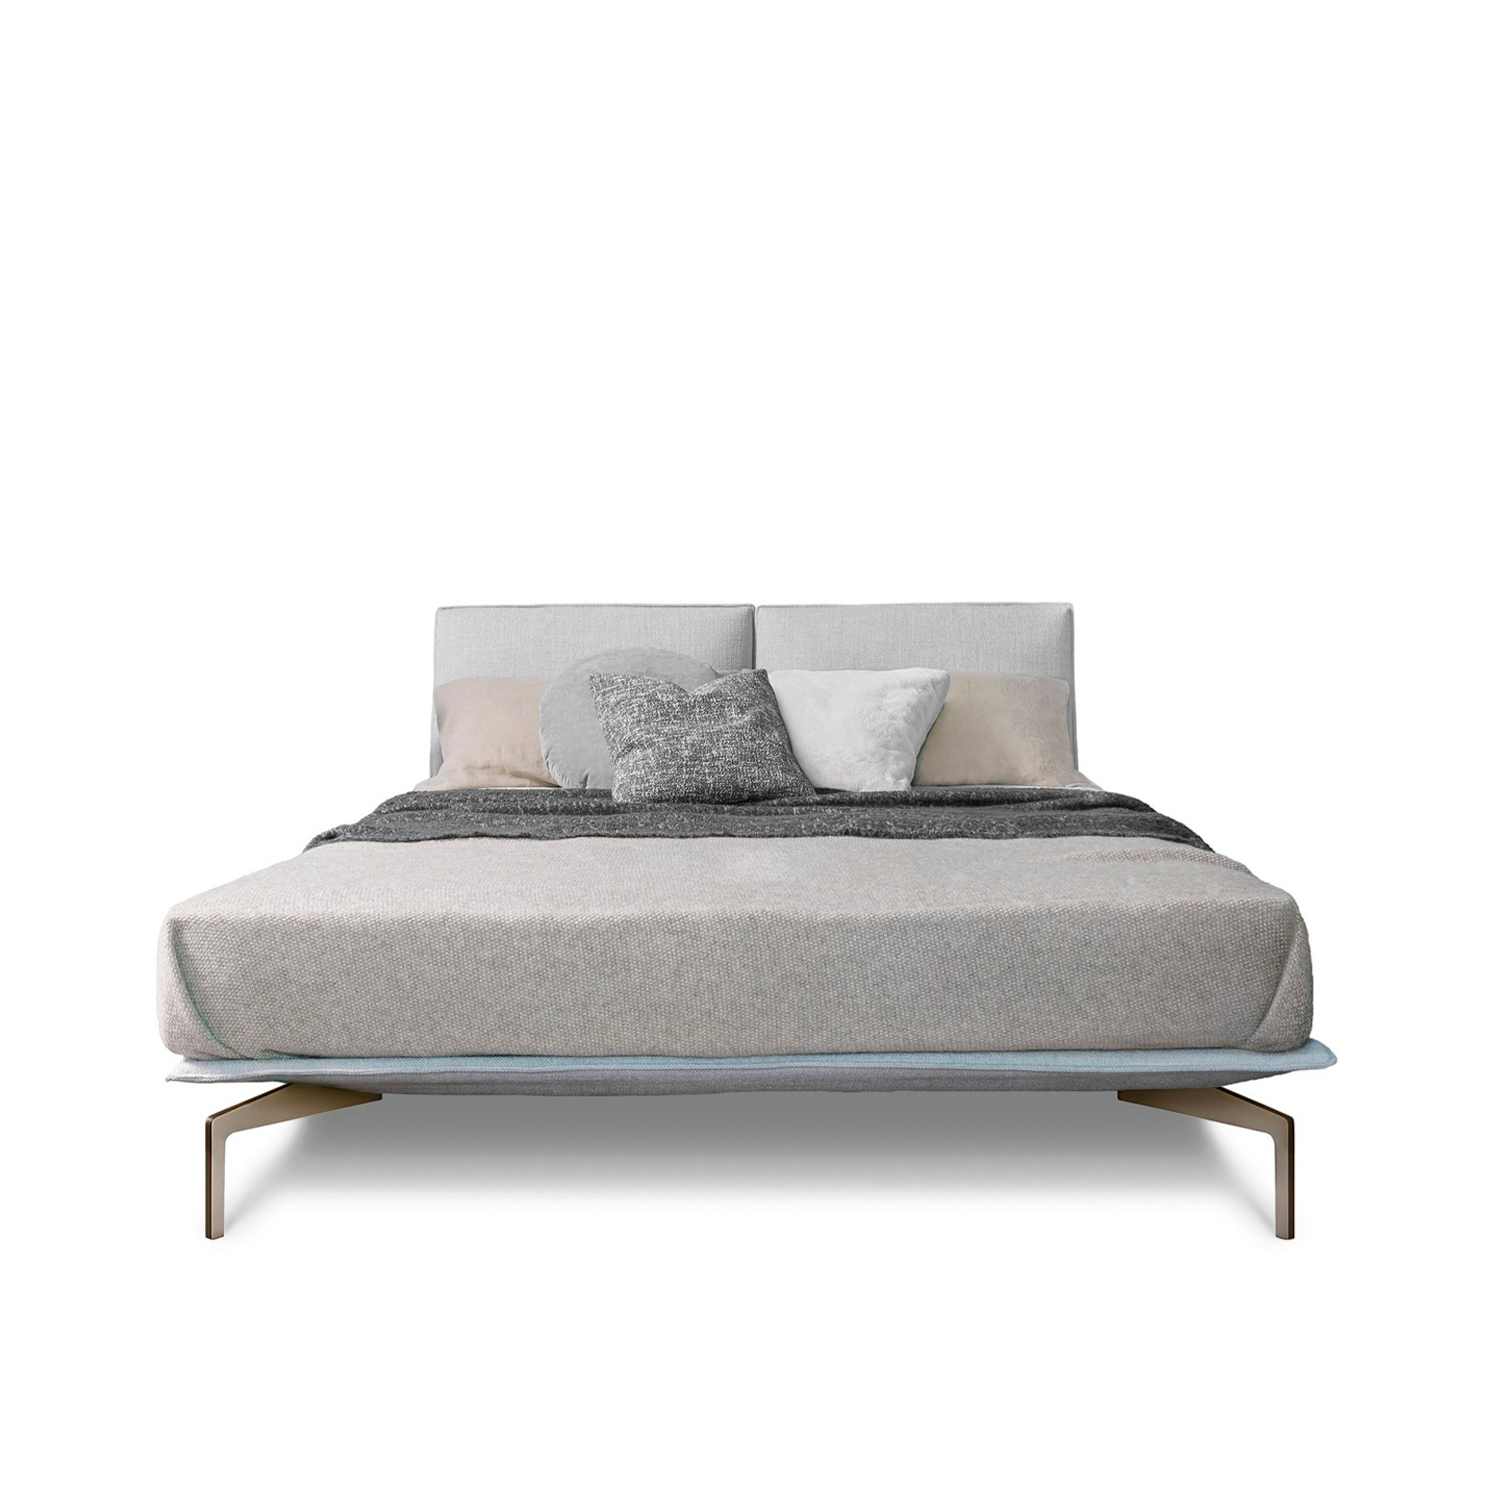 Avant-Aprés Bed  - The Avant-Après bed has a sober allure and elegant presence.‎ The design is grounded yet lightweight and transforms into a range of interesting configurations thanks to the detachable headboard.‎ The headboard pieces allow for flexibility in the design and can be positioned along the entire circumference of the base.‎ The bed-frame available for upholstery in fabric or leather, rests neatly on a metal base finished with glazed chrome or painted metal feet.‎